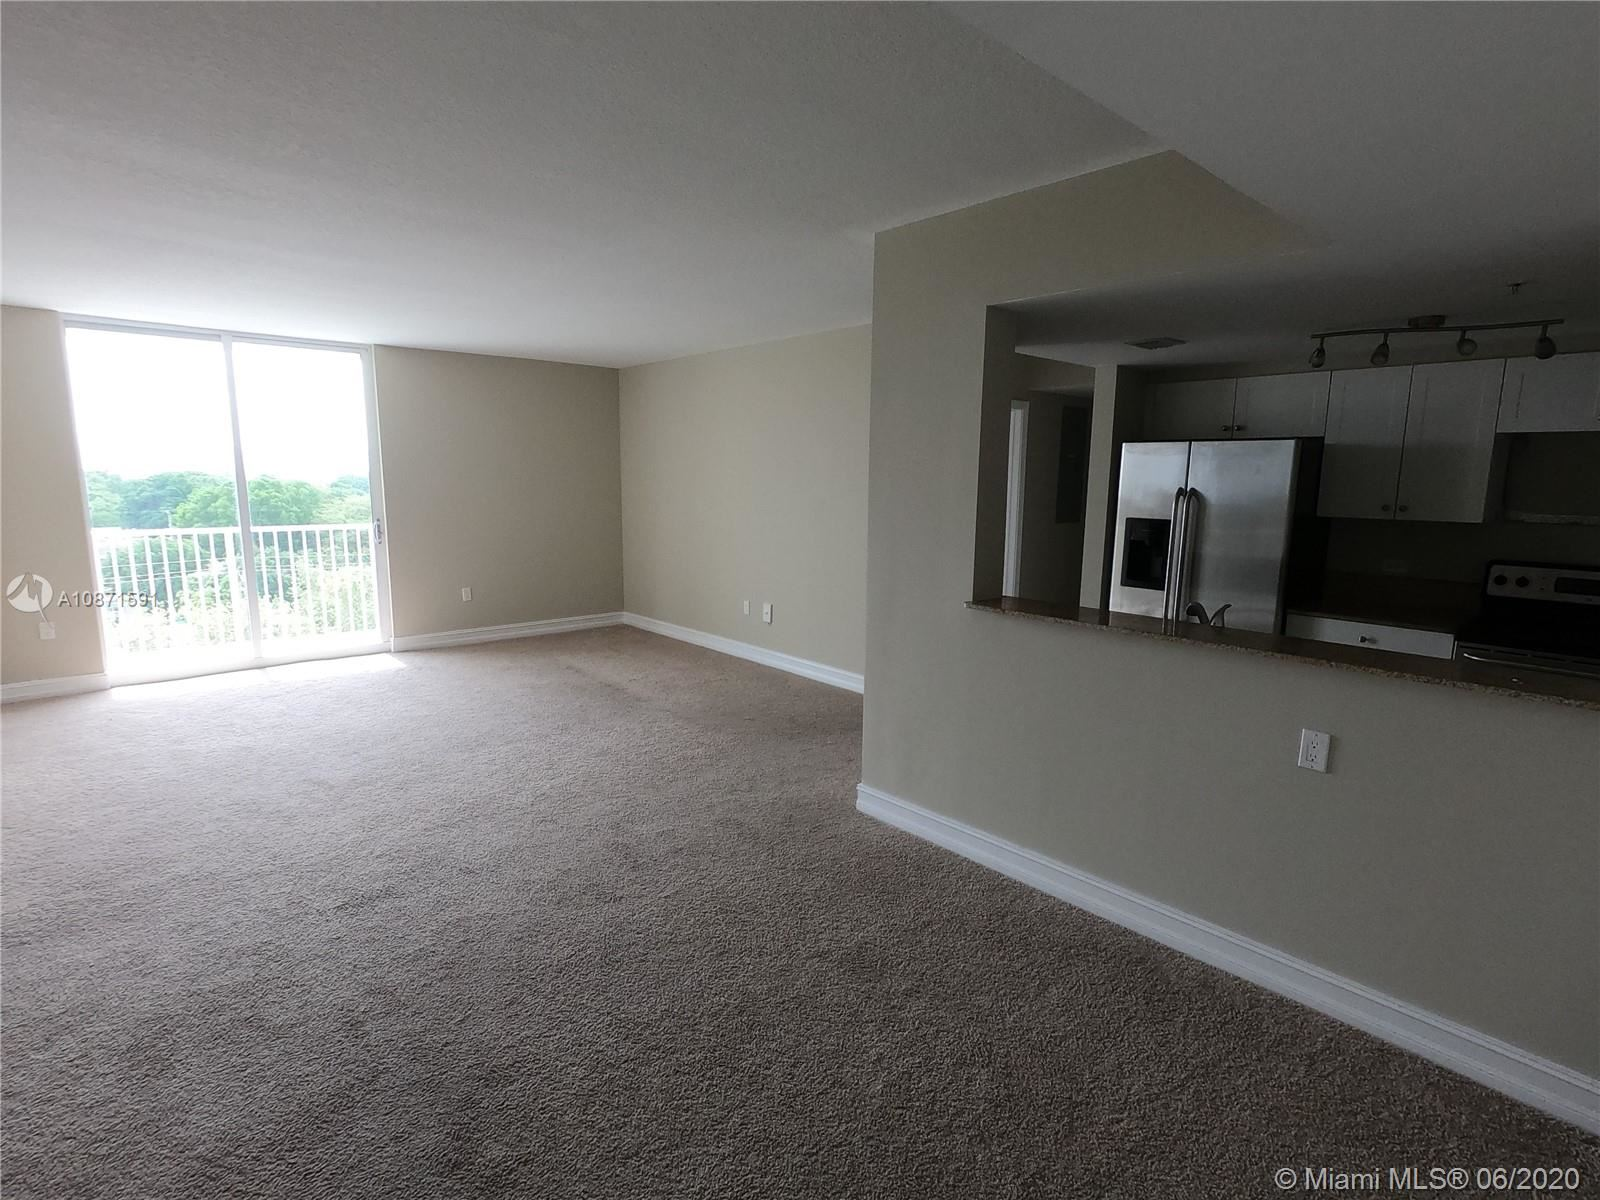 117 NW 42nd Ave #612, Miami, FL 33126 - #: A10871591